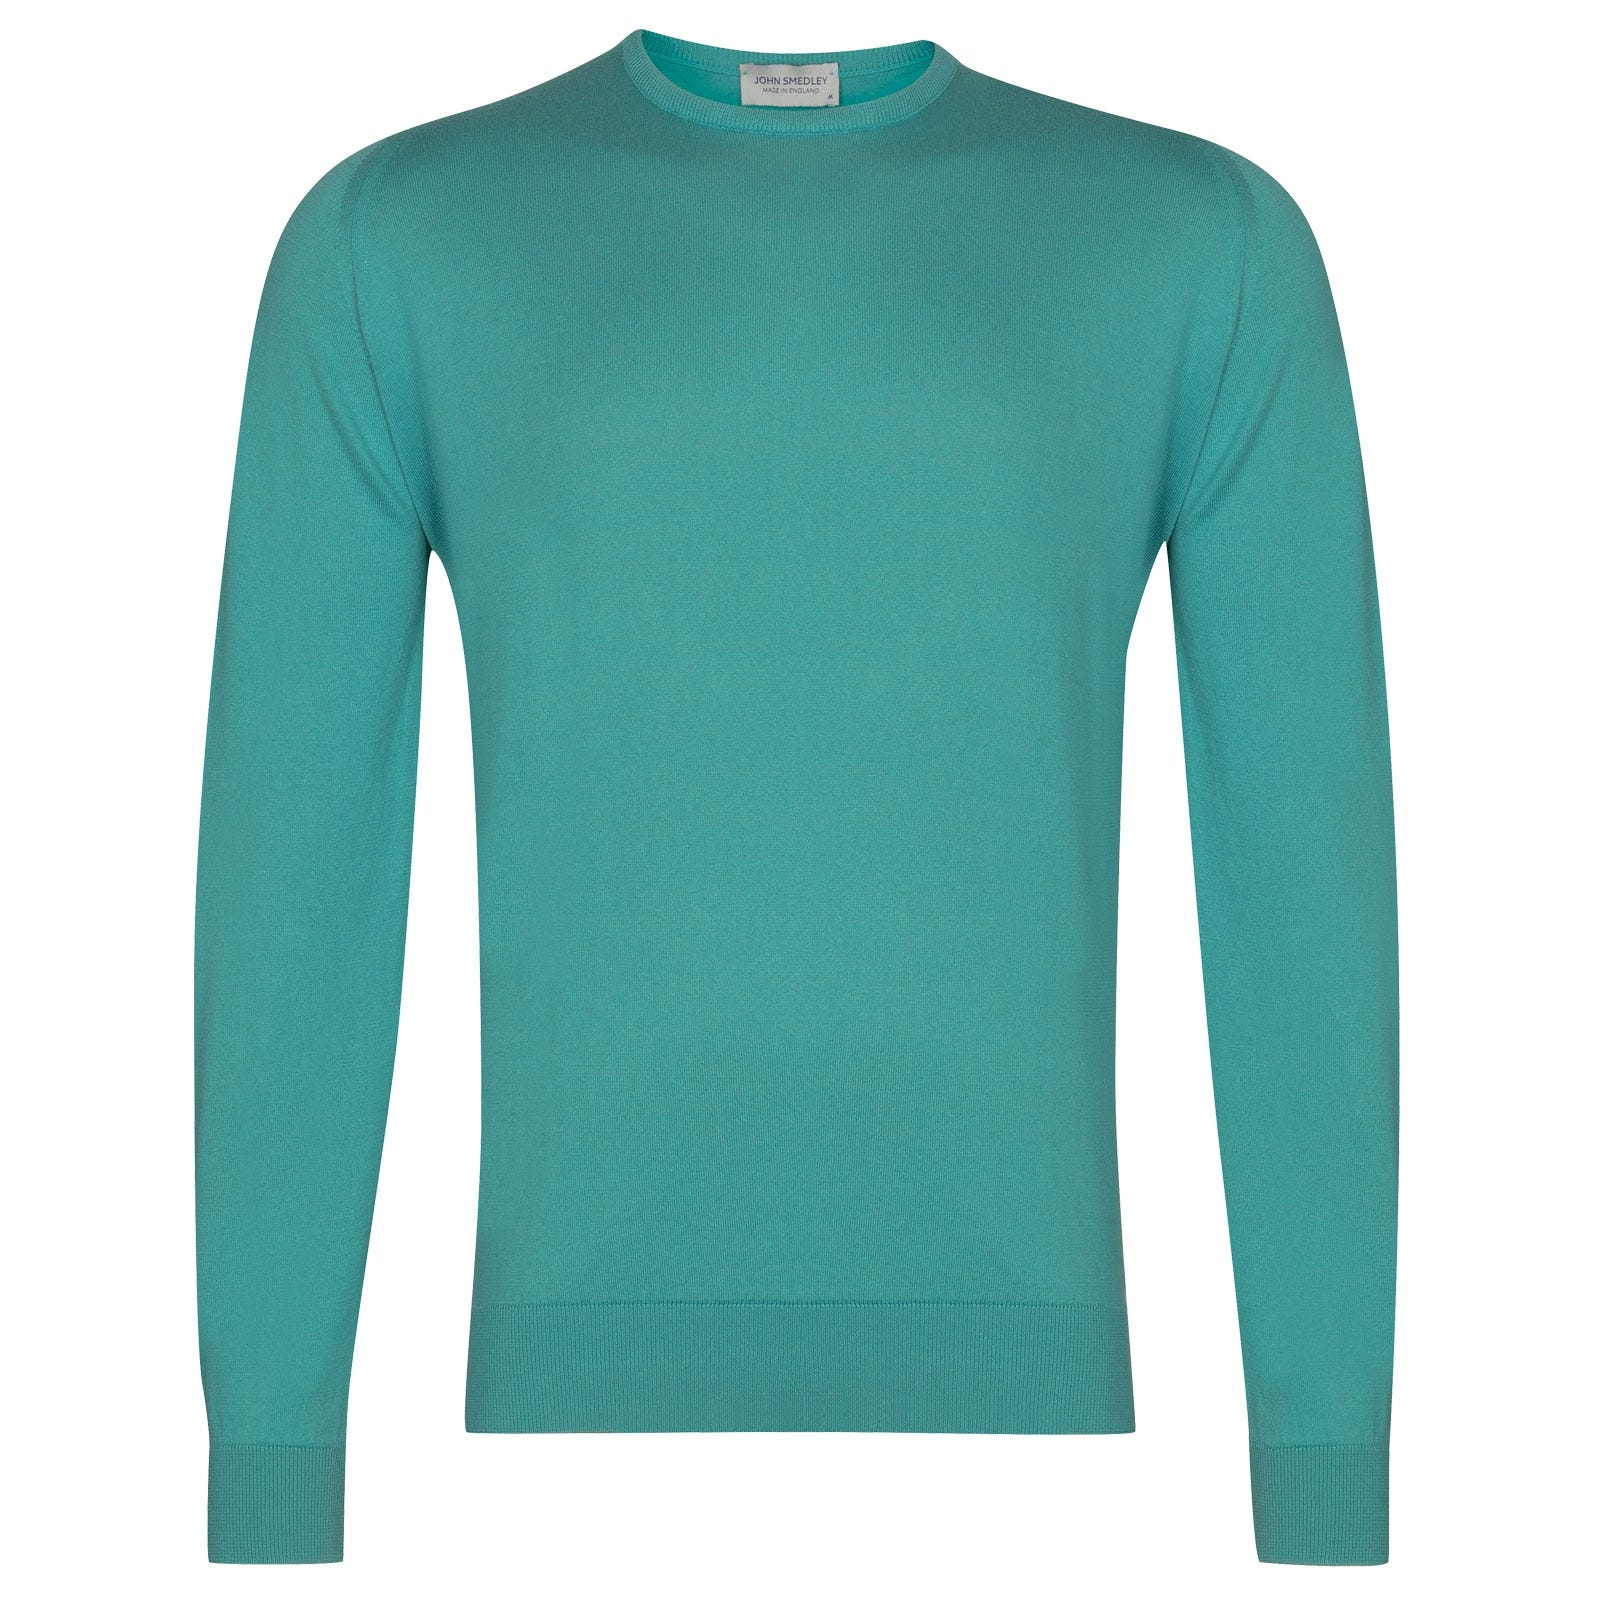 John Smedley Hatfield in Empyrean Blue Pullover-XXL